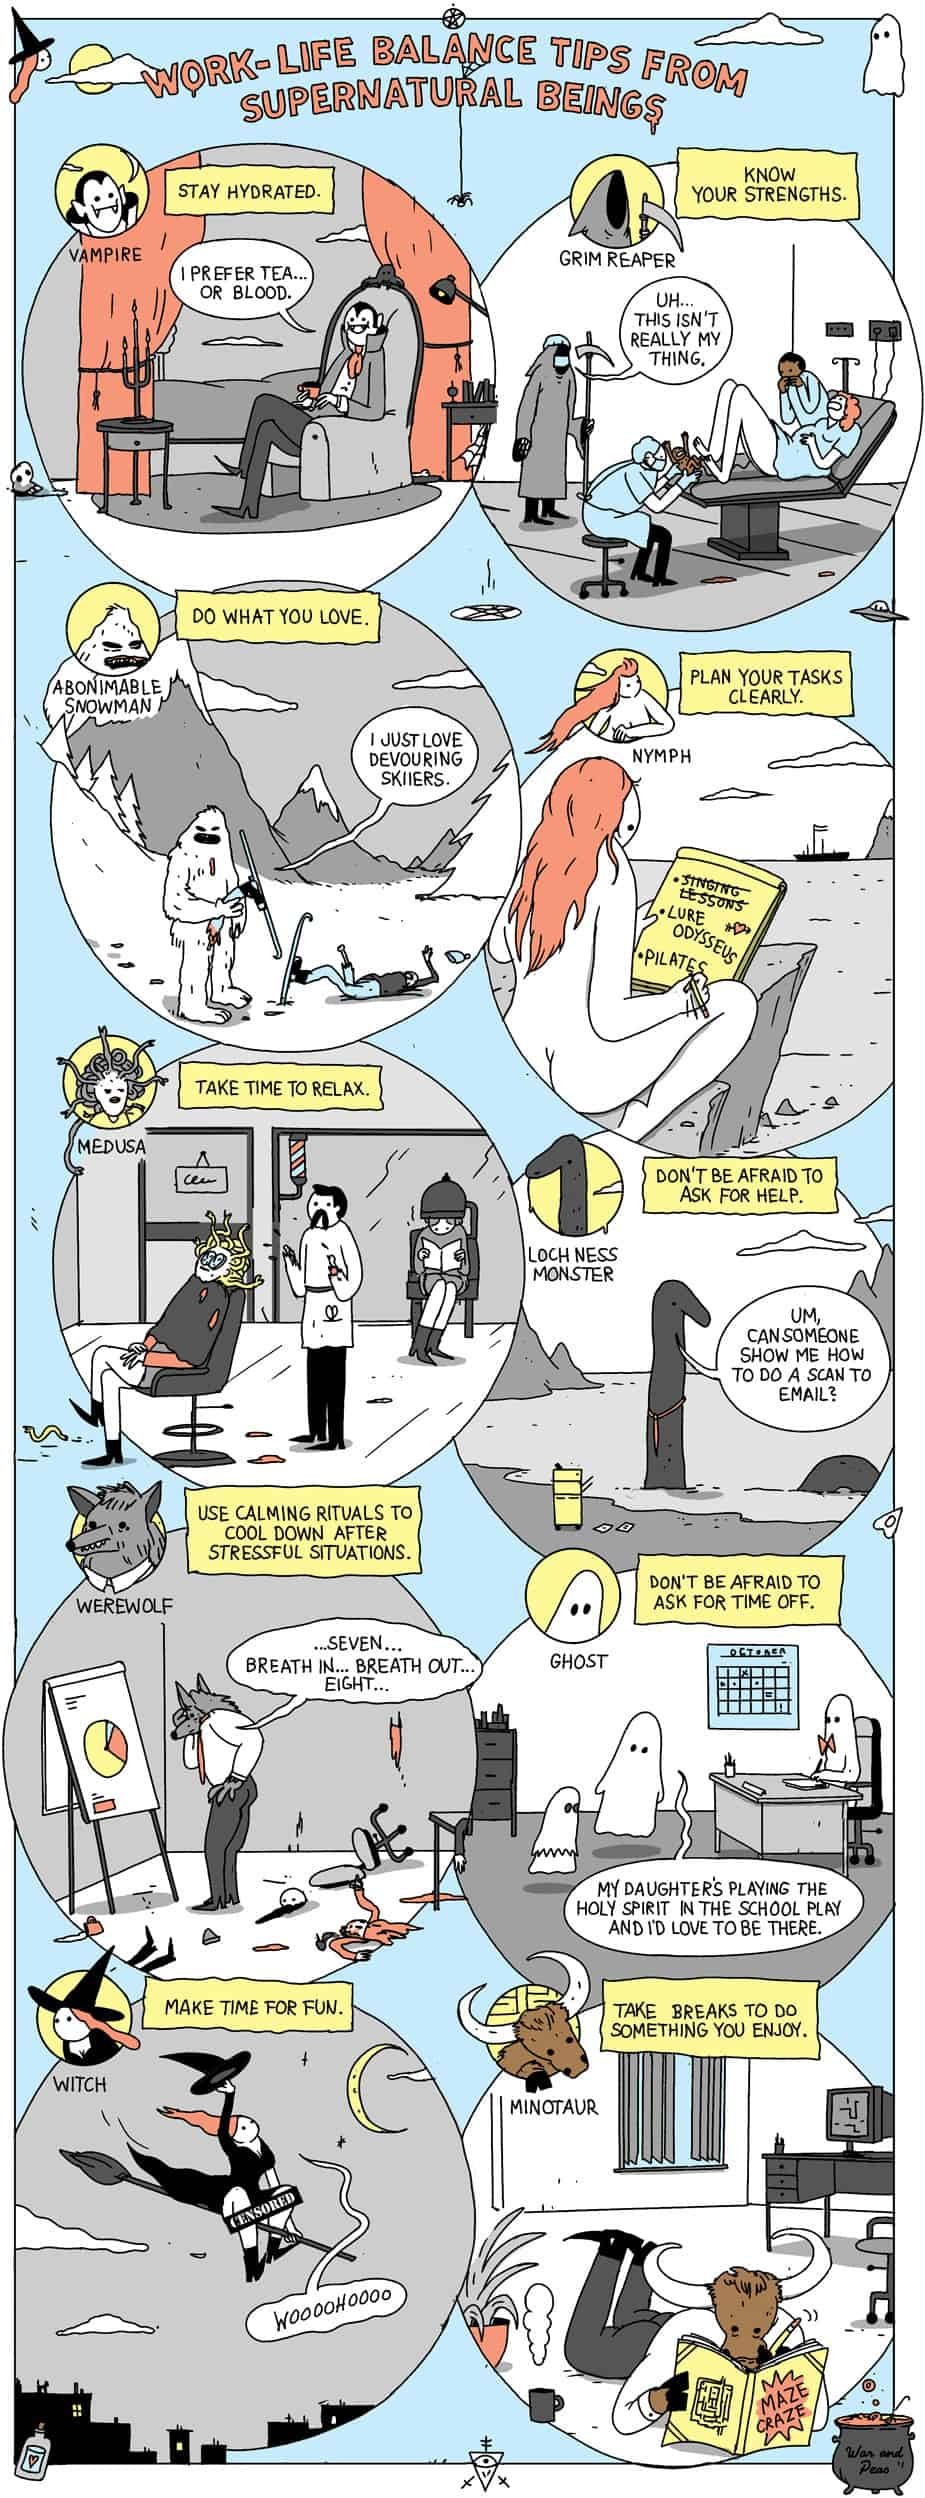 Work-Life Balance Tips From Supernatural Beings comic